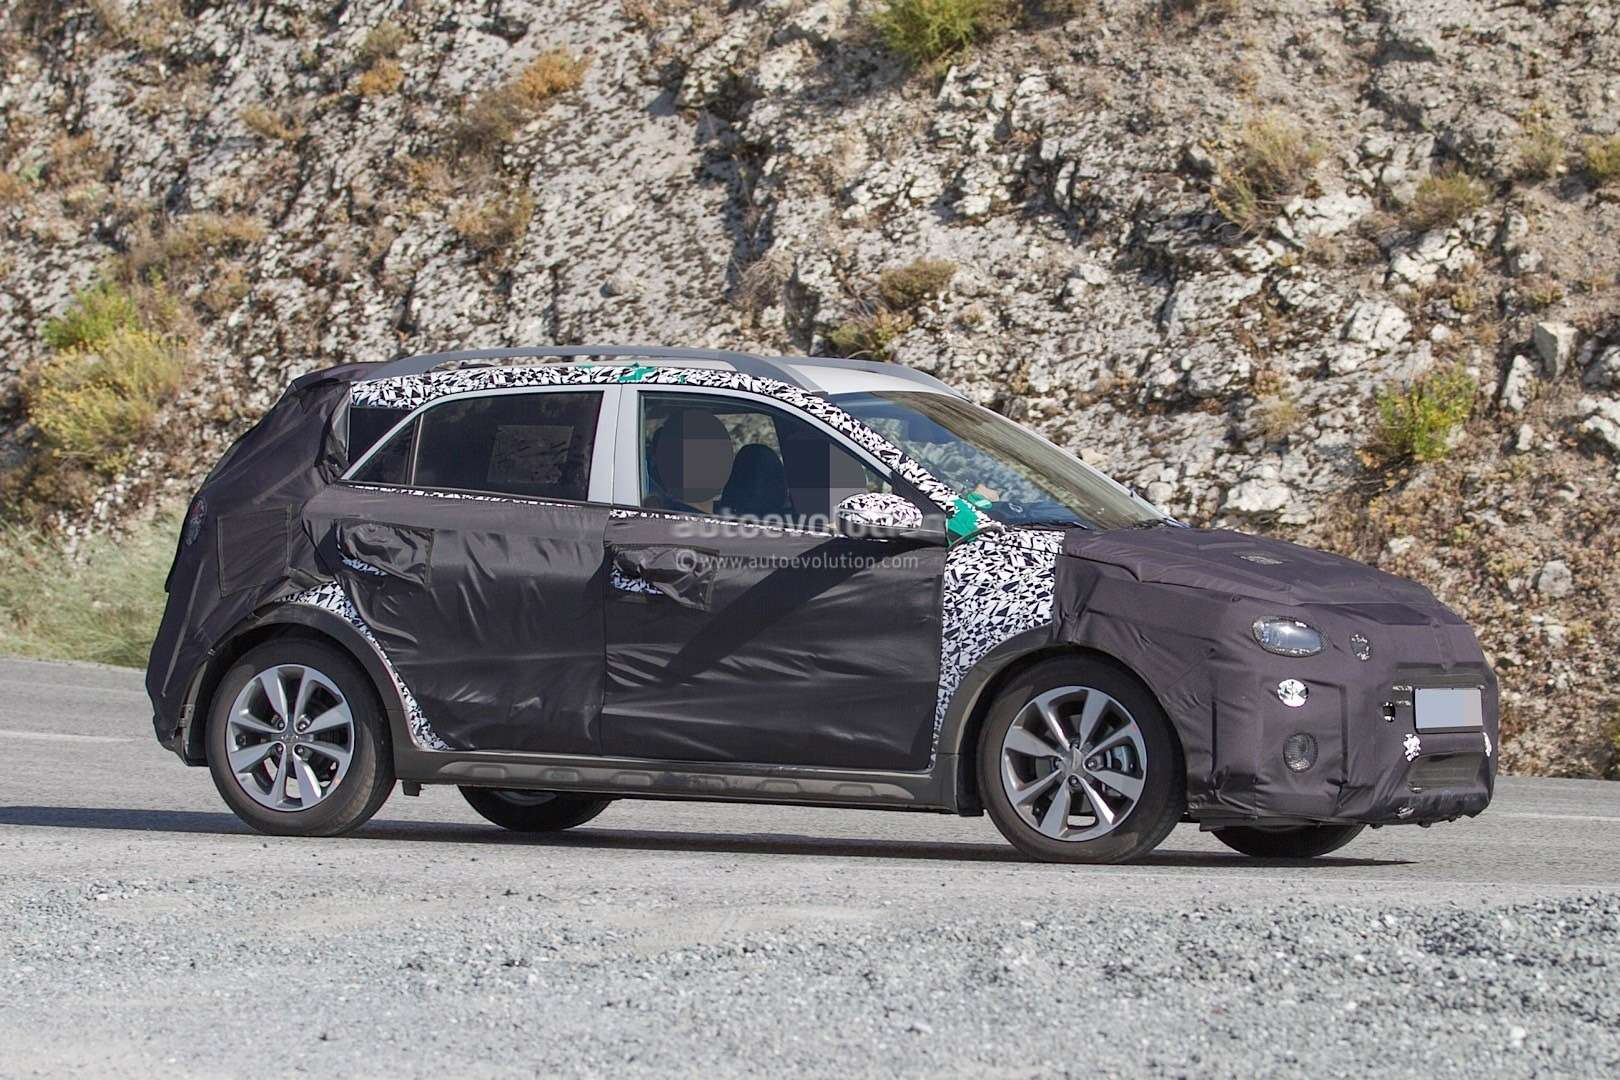 hyundai-i20-cross-test-mule-spotted-in-southern-europe-it-might-become-a-global-model-photo-gallery_4